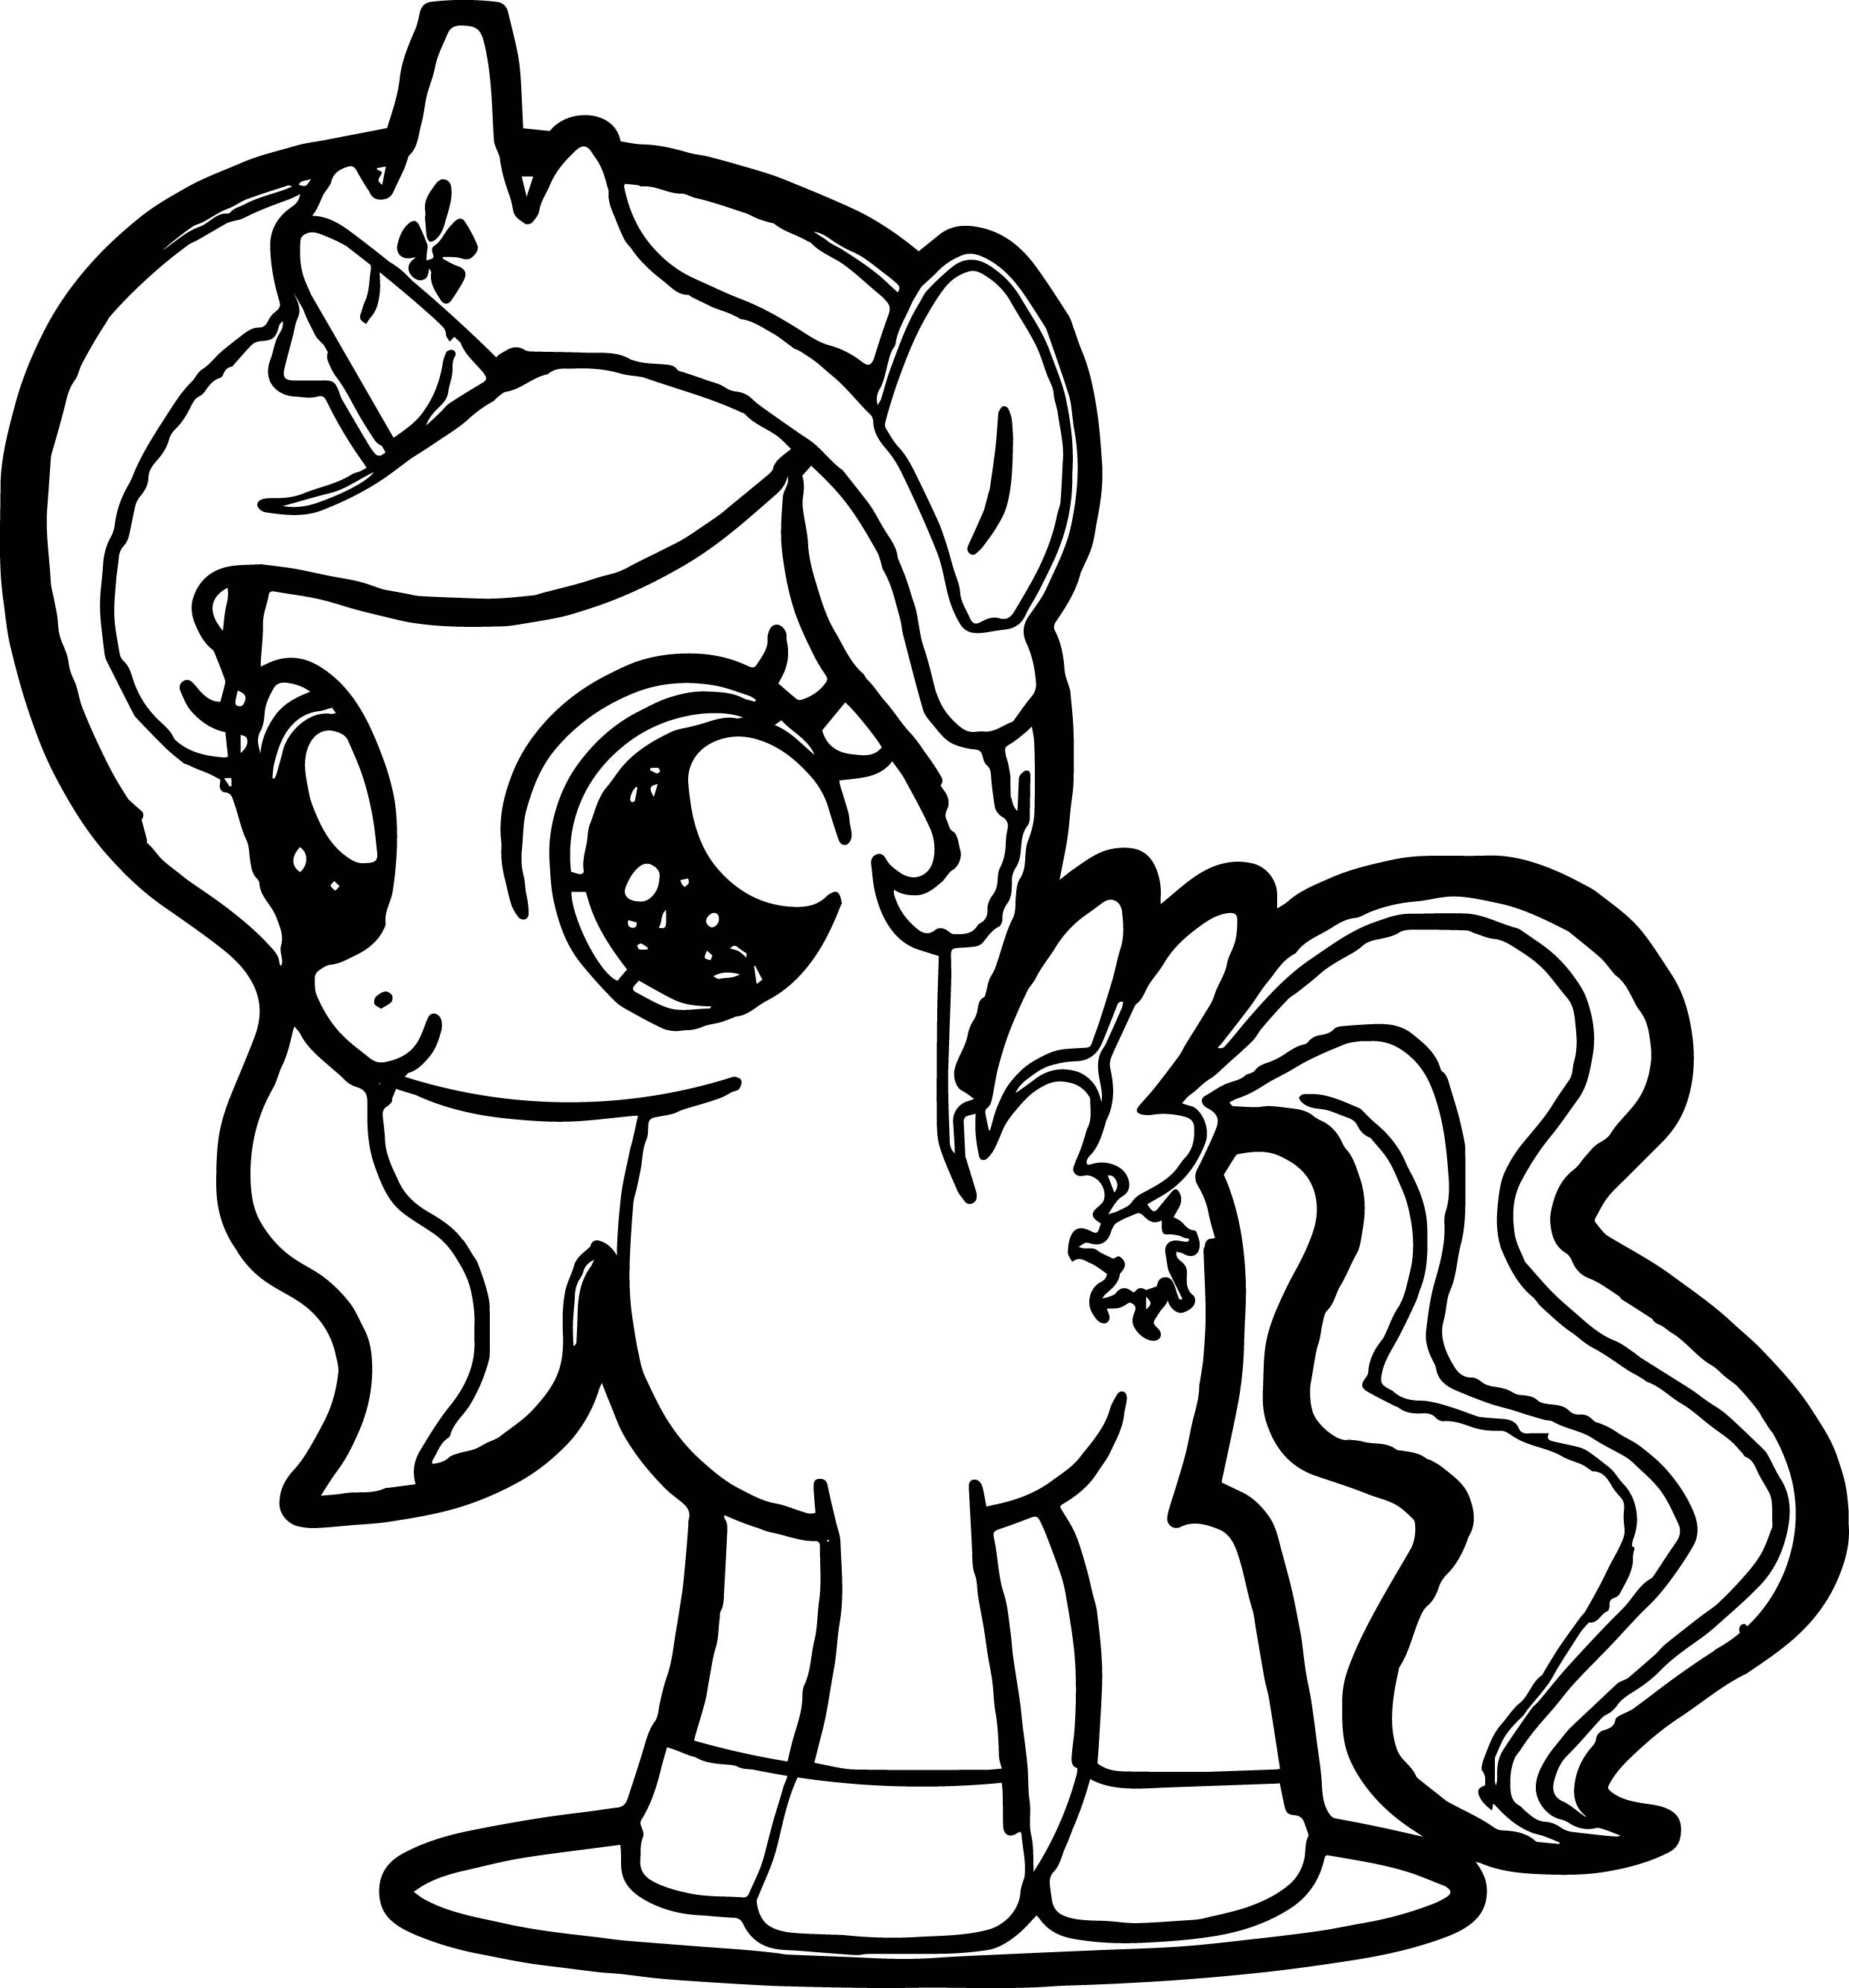 2480x2667 My Little Pony Coloring Pages Princess Luna Filly F Book Cute